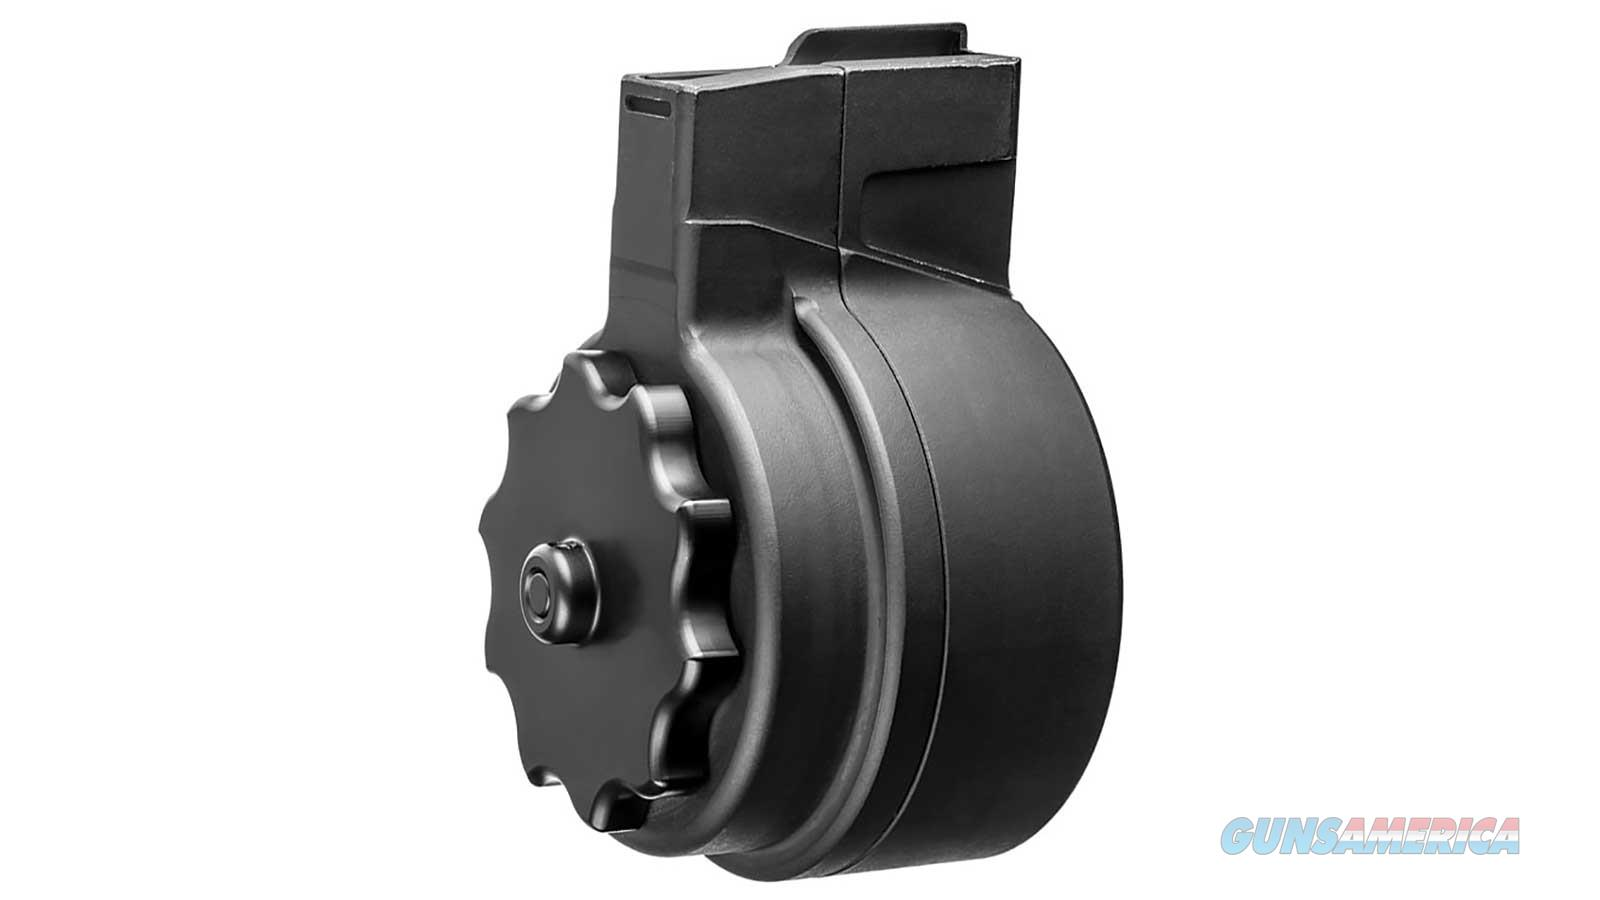 X Products X-91 50Rd Drum Mag Hk91 G3 X91MBLK  Non-Guns > Magazines & Clips > Rifle Magazines > Other